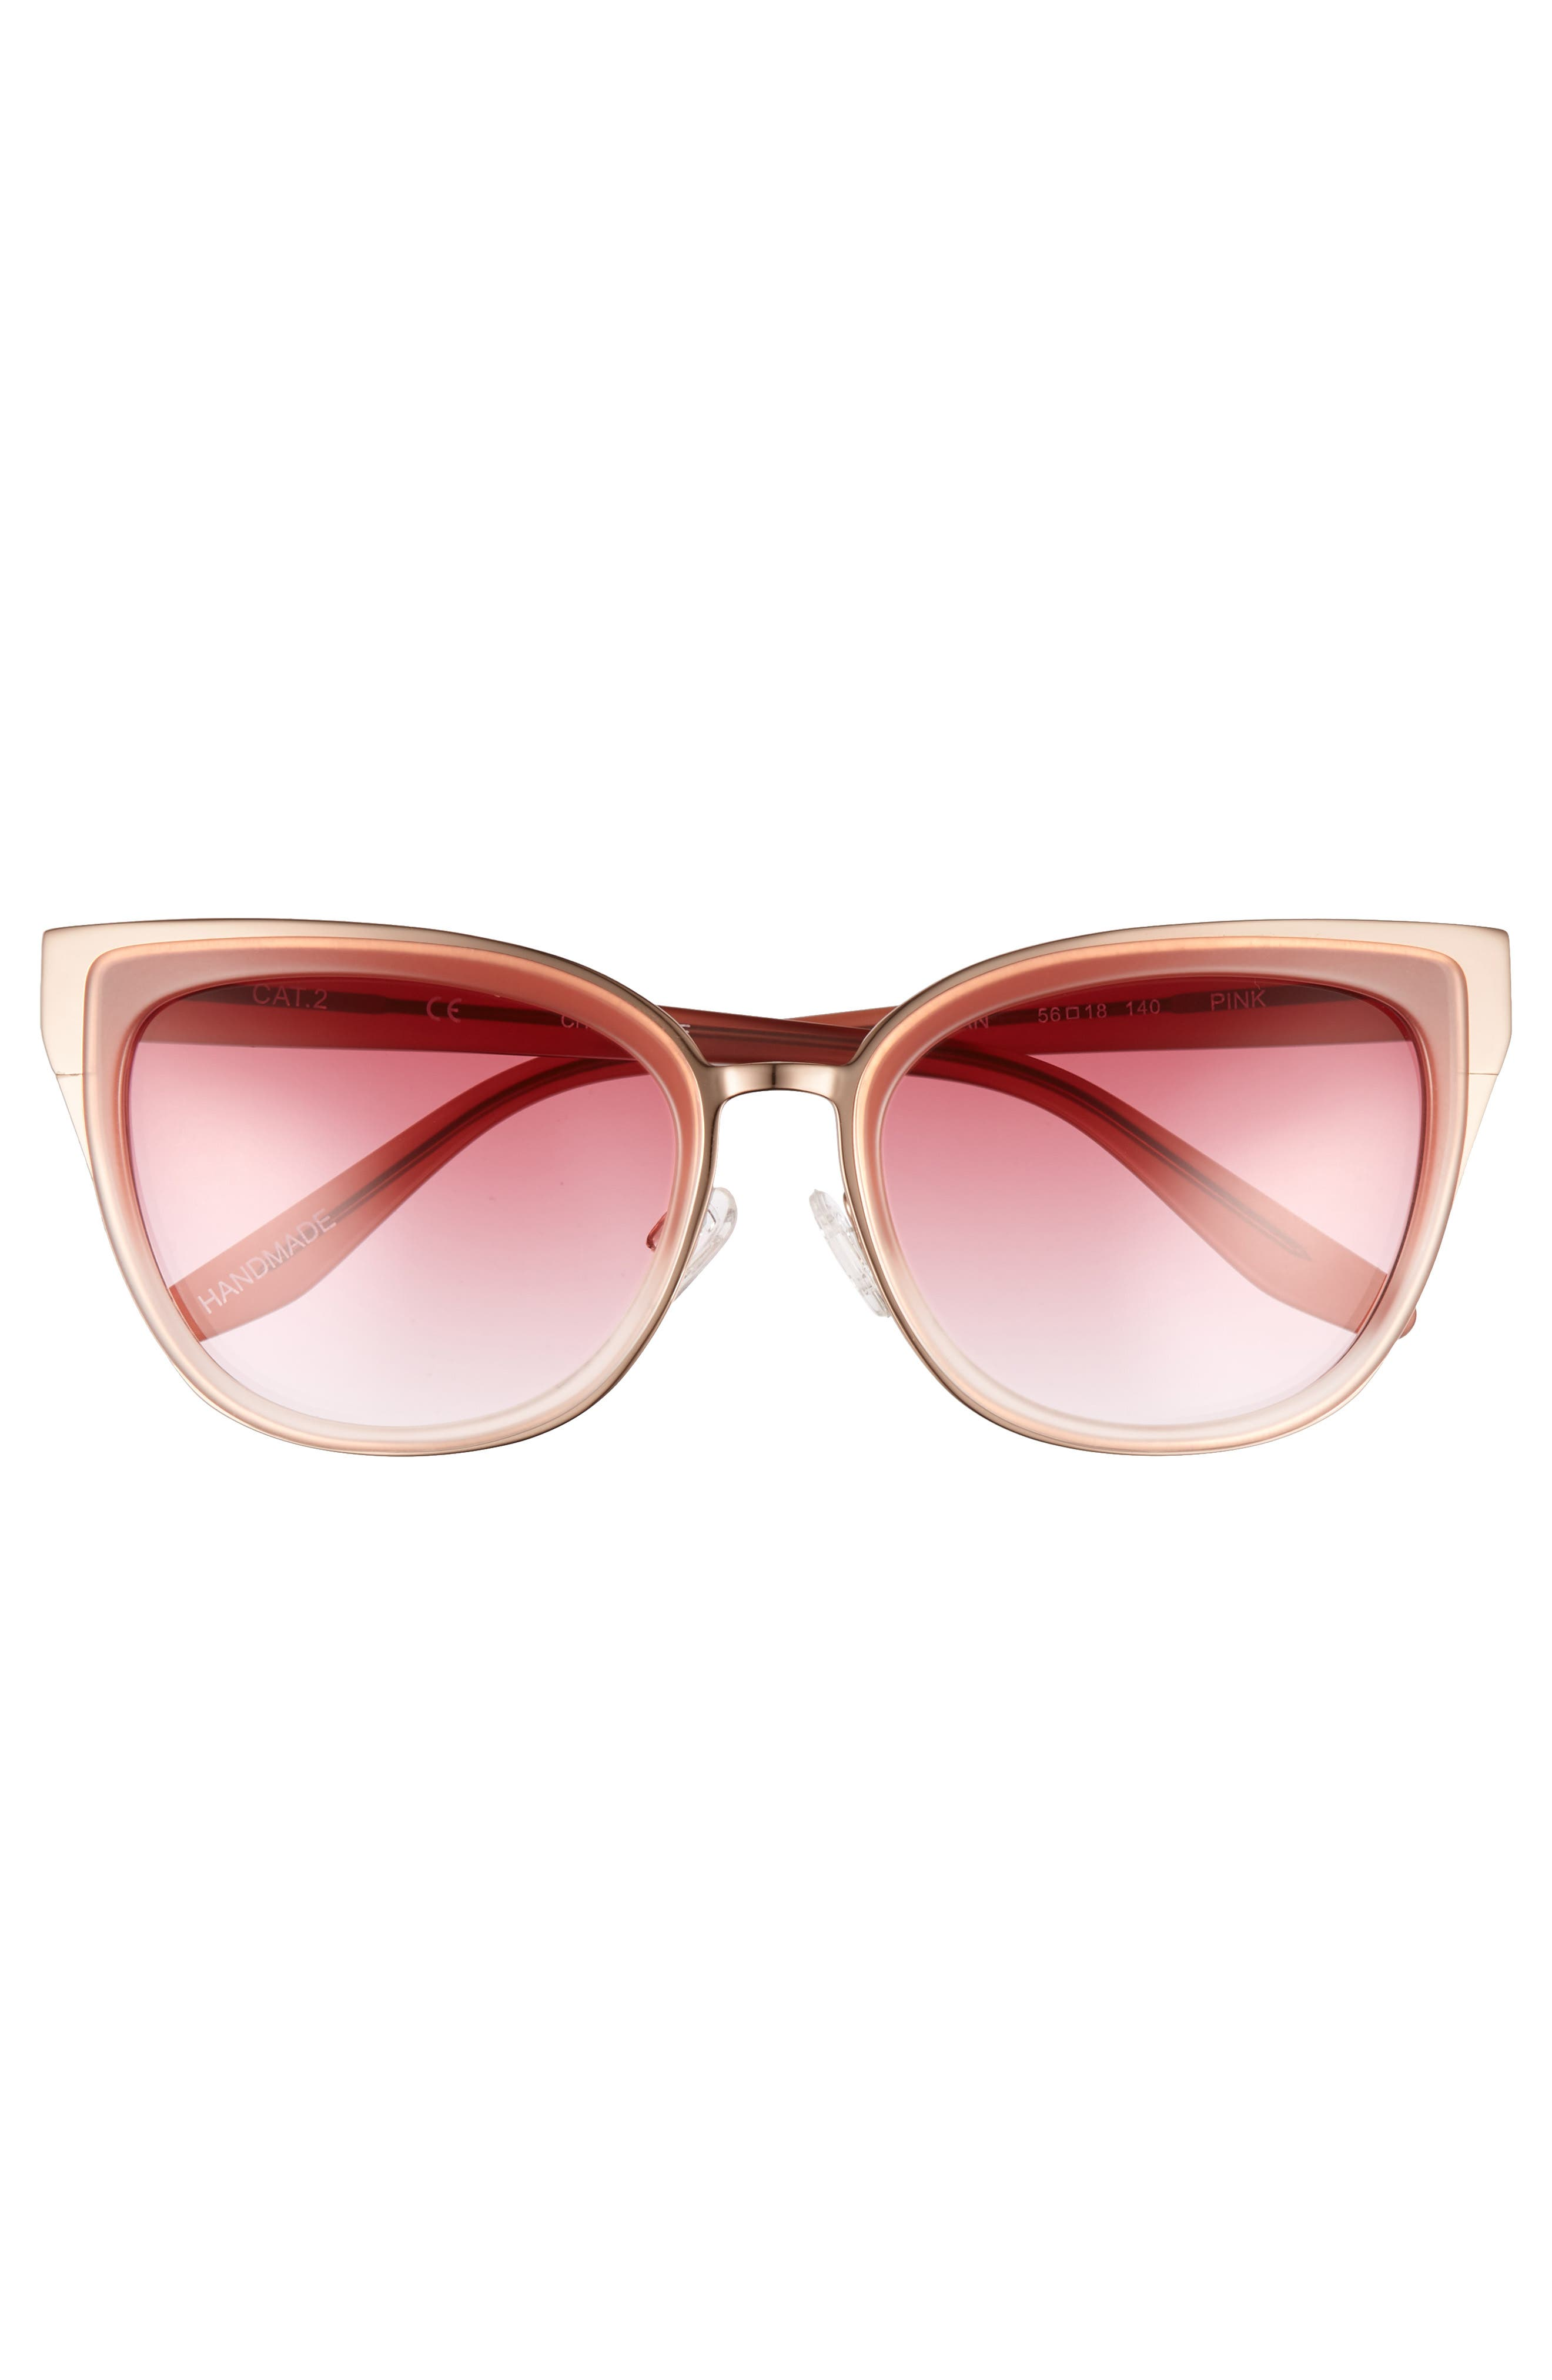 Lillian 56mm Sunglasses,                             Alternate thumbnail 3, color,                             Milky Pink- Rose Gold